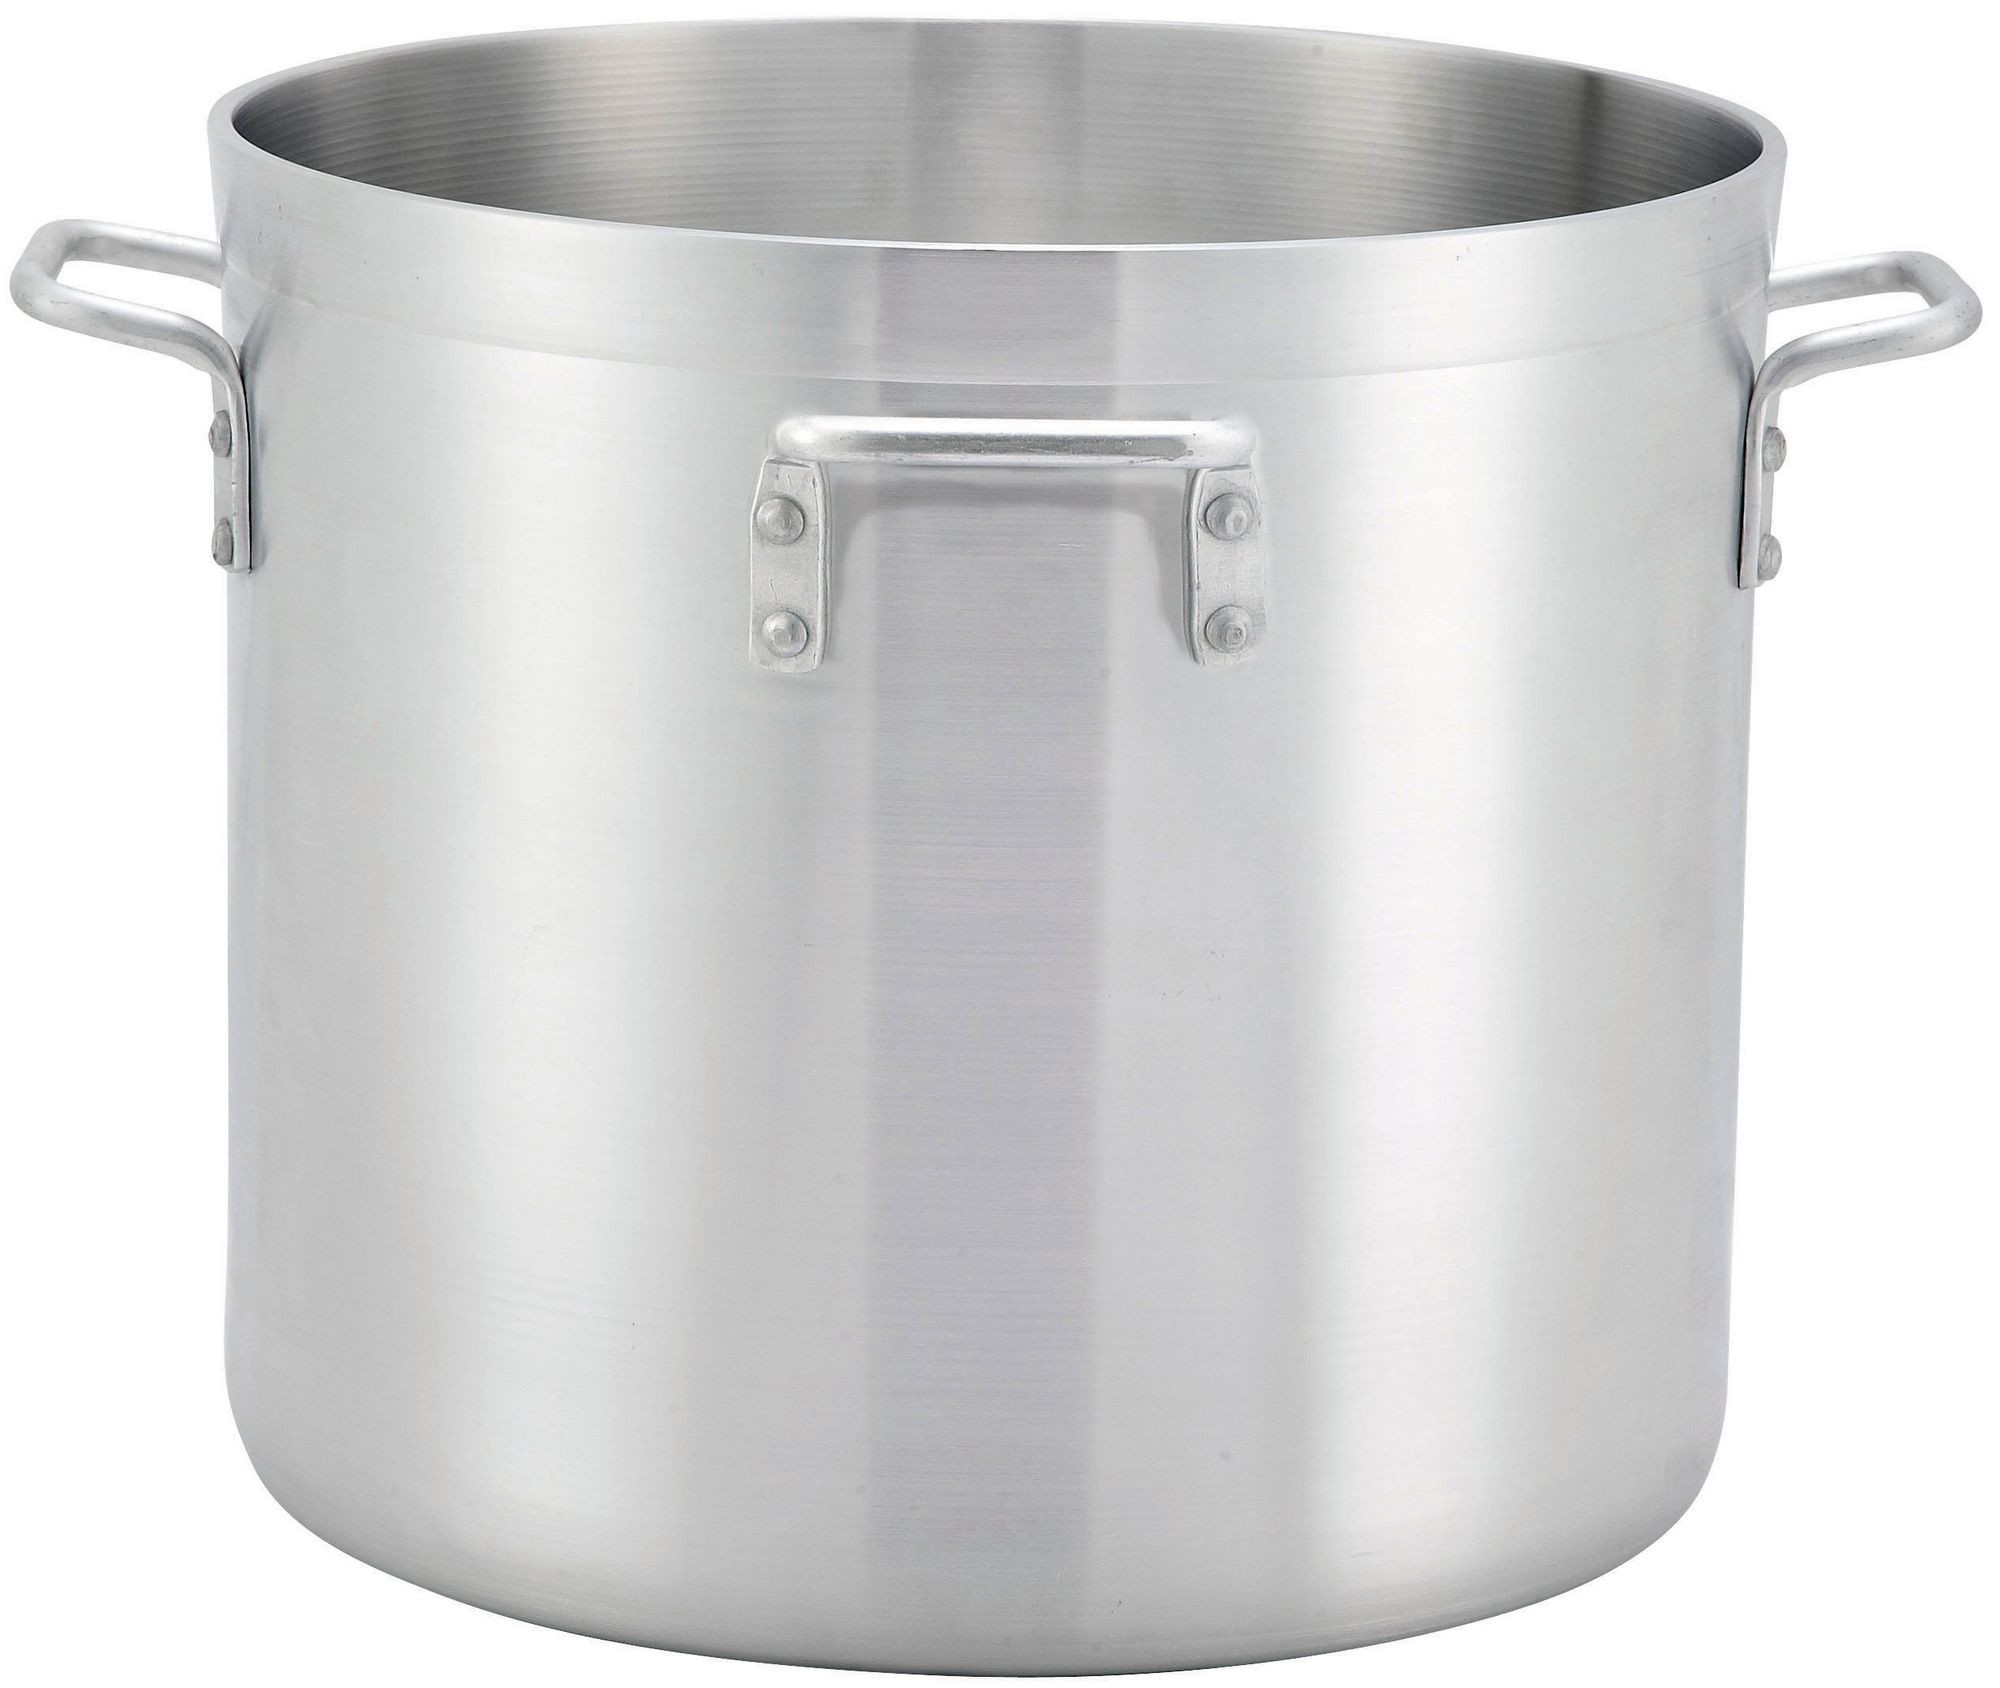 Extra Heavy Aluminum 160Qt Stock Pot With 4 Handles